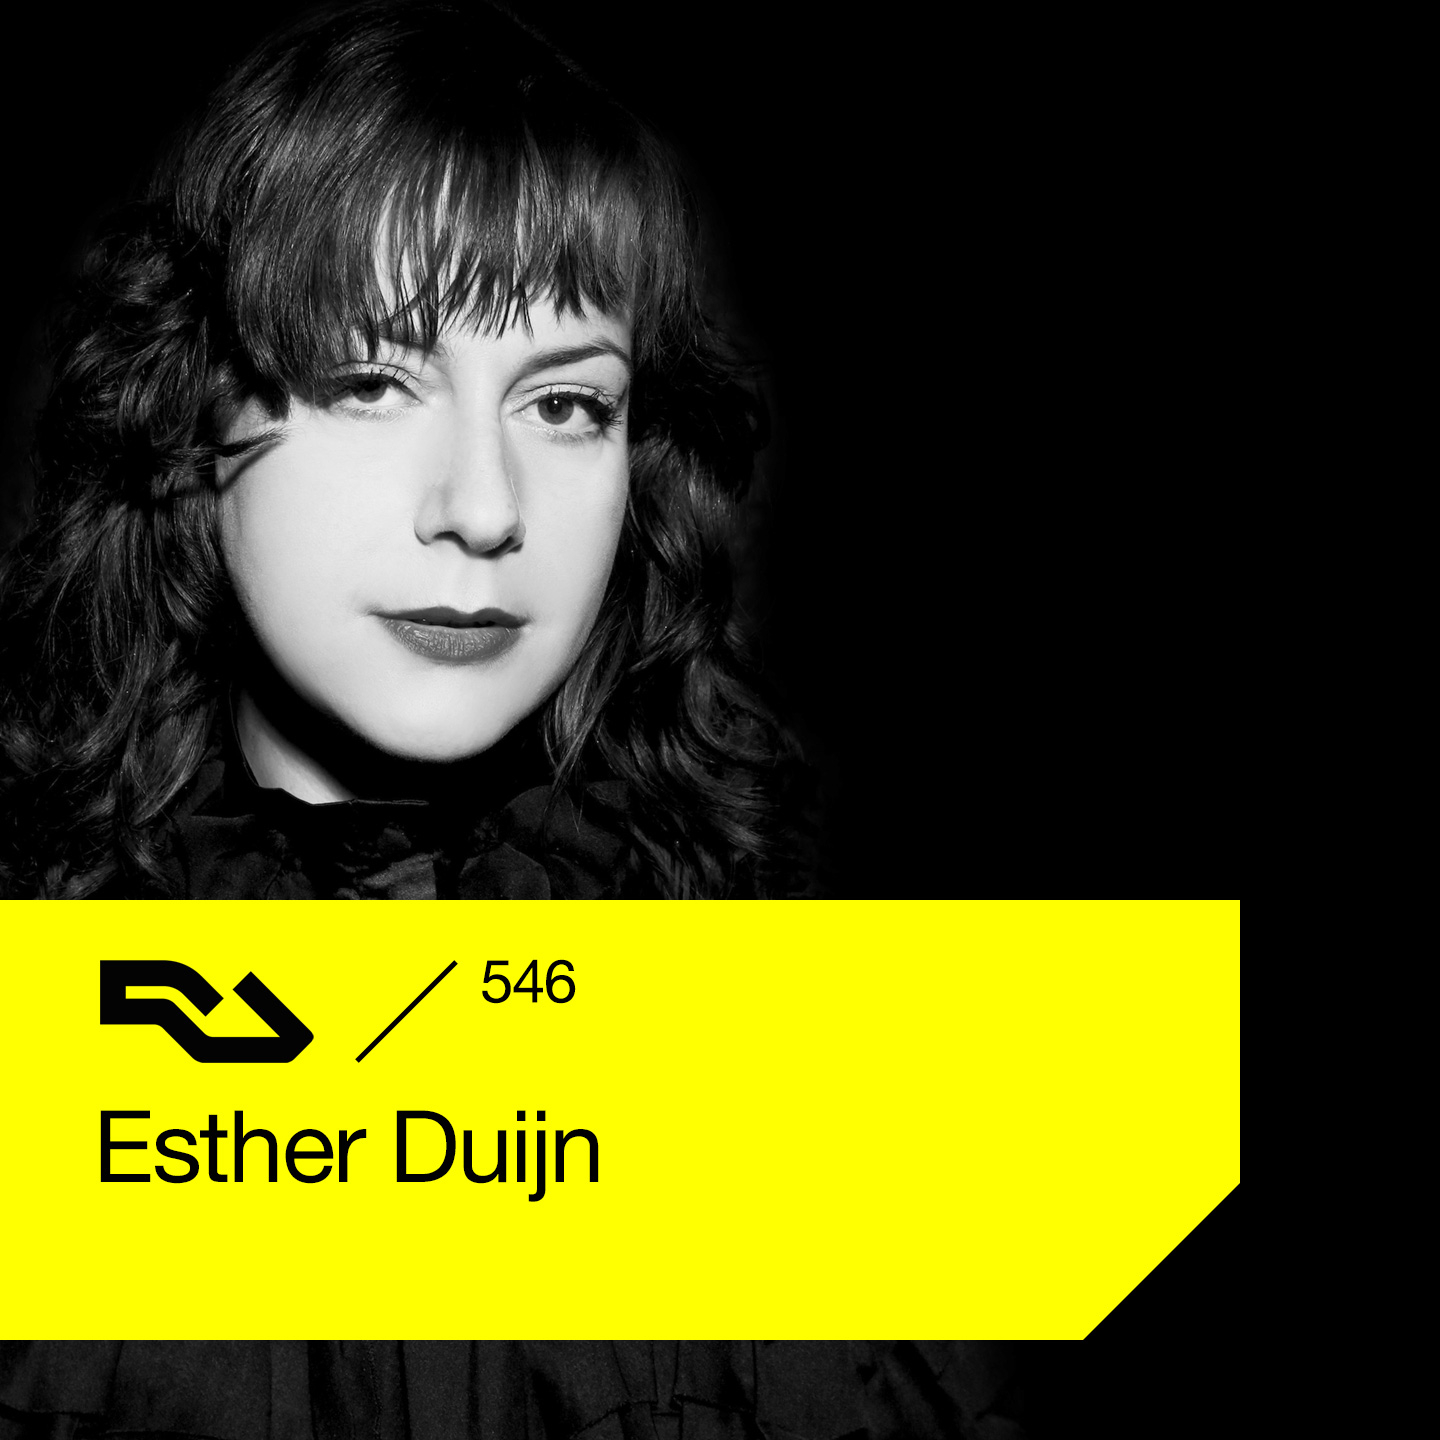 RA.546 Esther Duijn